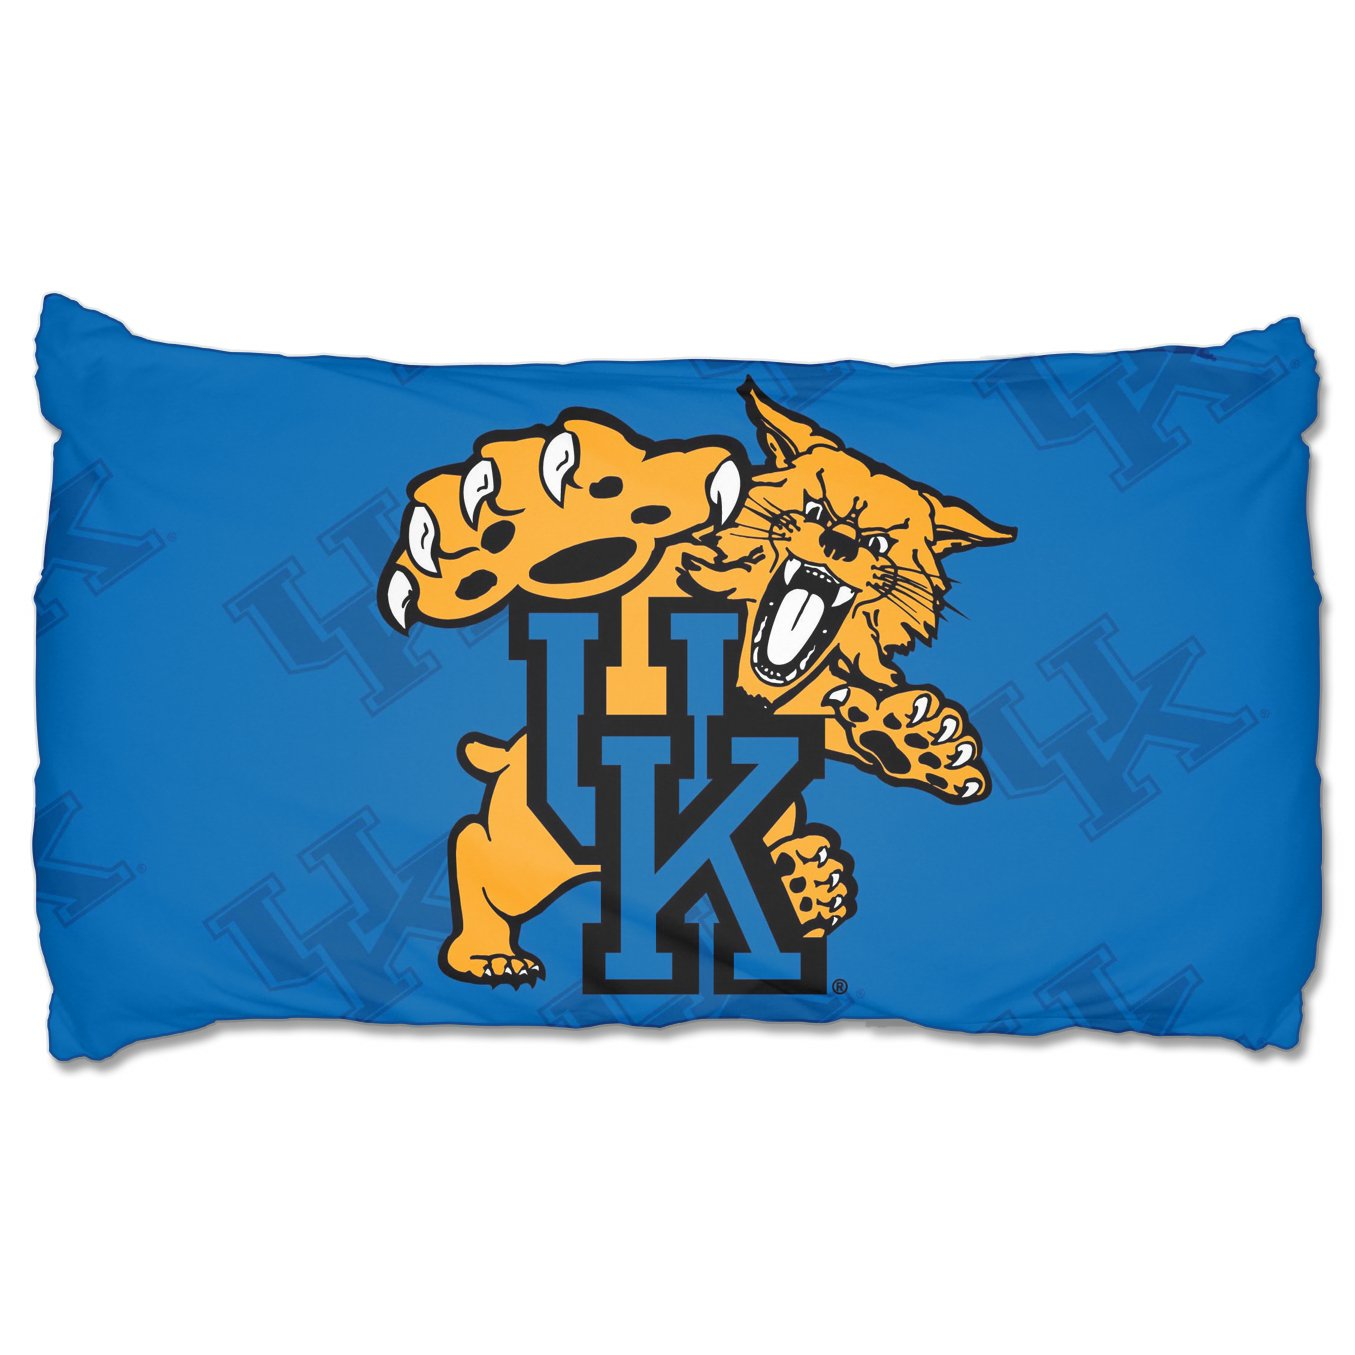 Blue 20 x 30 The Northwest Company Officially Licensed NCAA Kentucky Wildcats Pillowcase Set